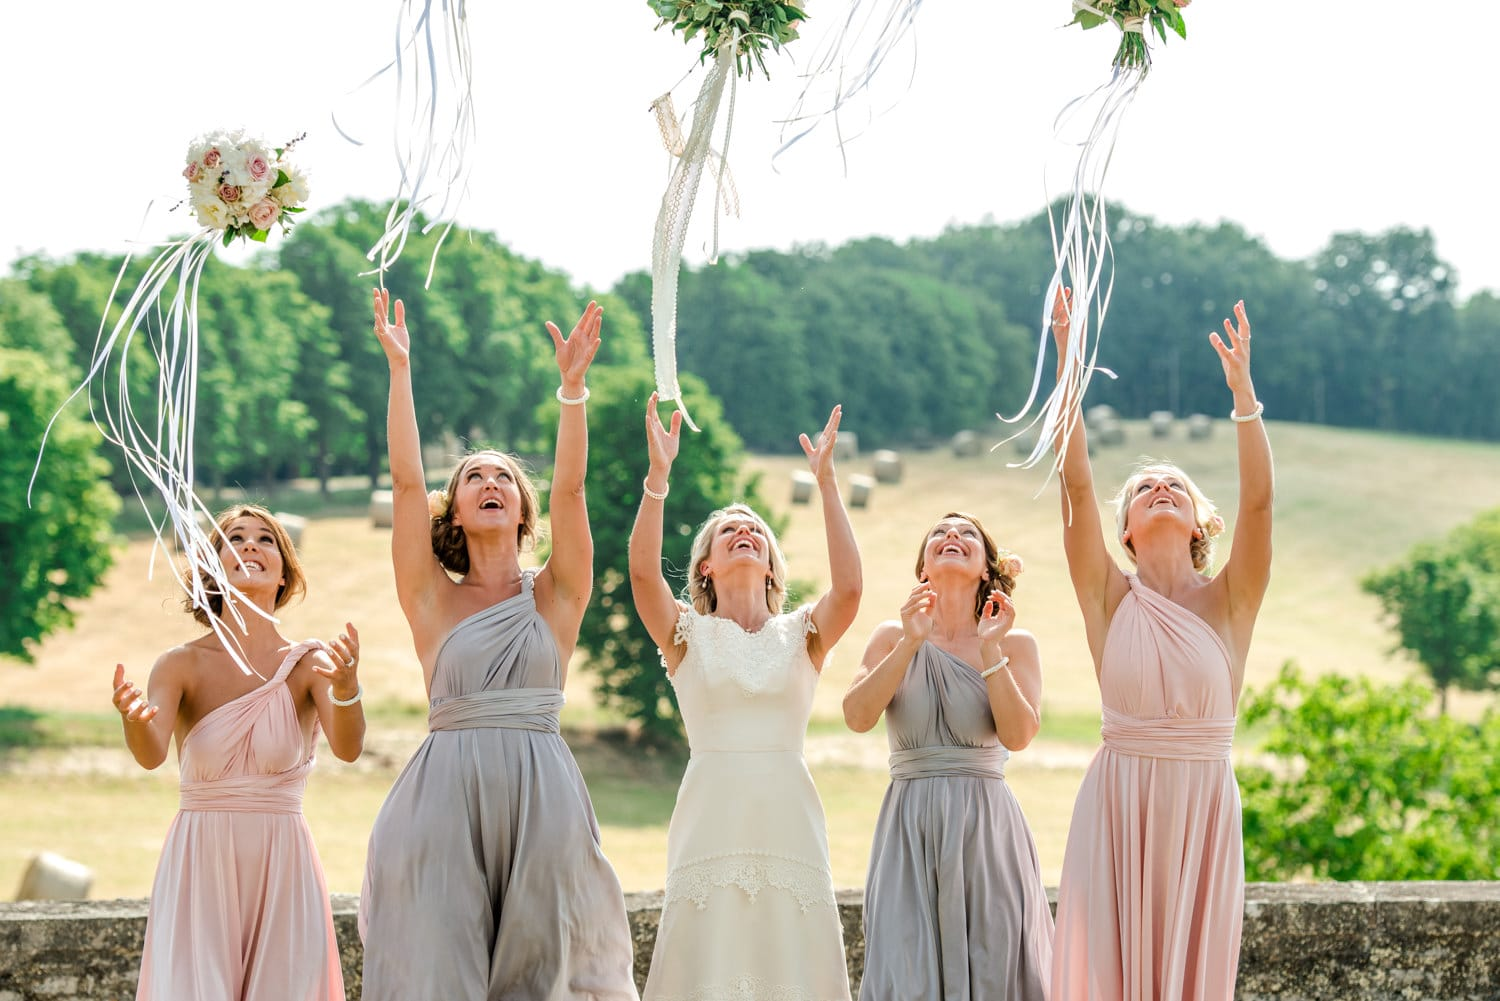 bride and bridesmaids throwing their bouquets at Chateau de Lacoste wedding venue